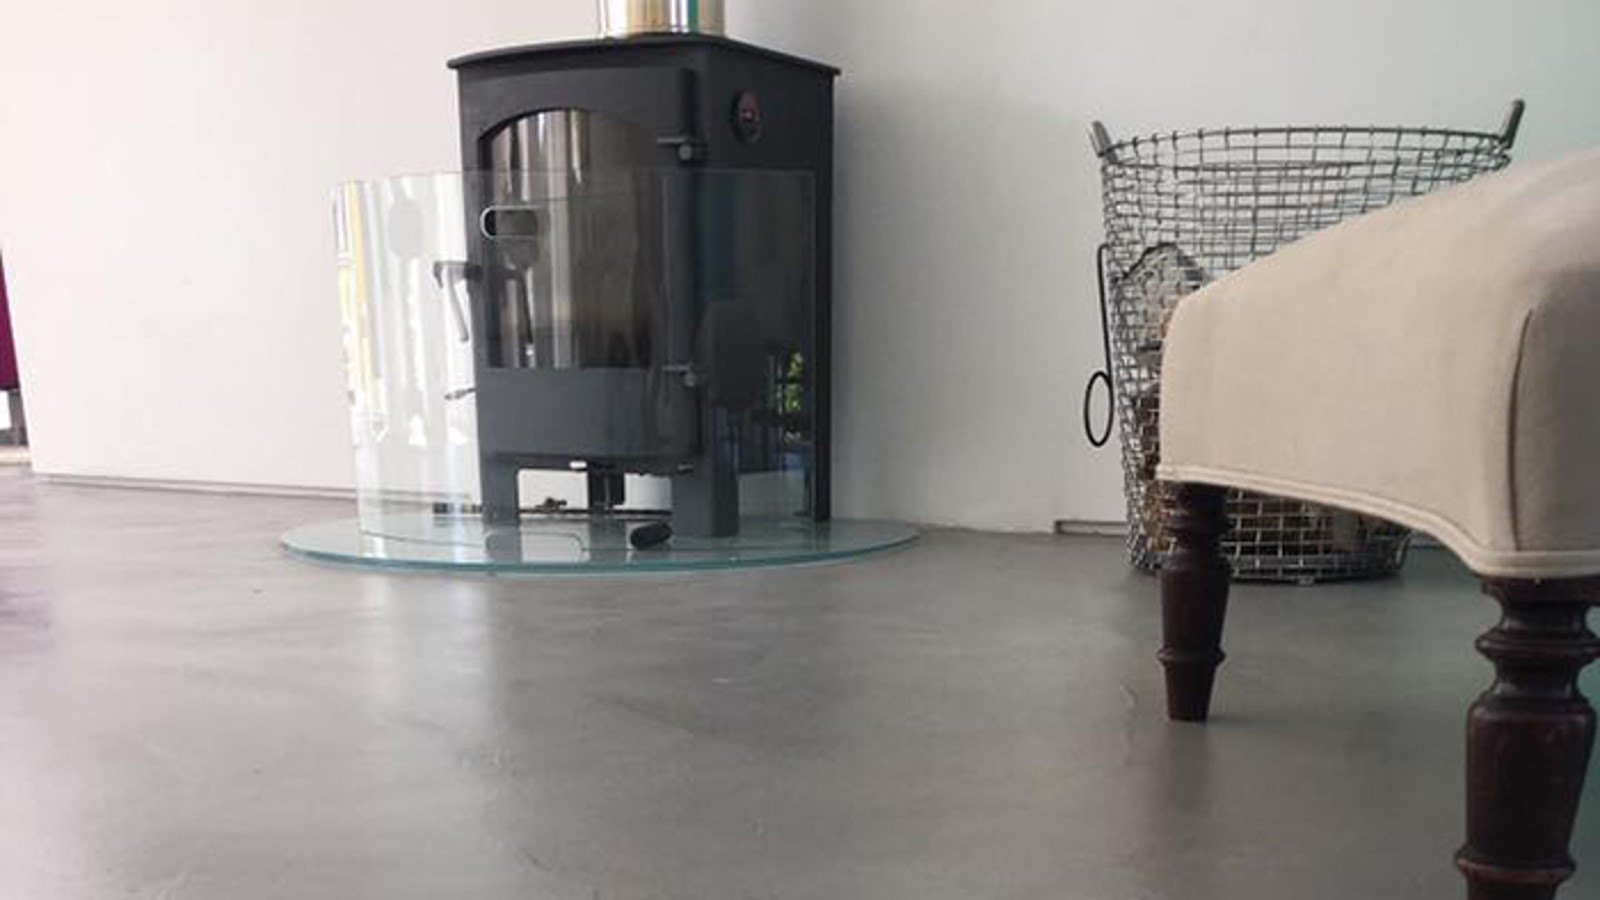 Residential polished concrete flooring lounge Ardex Pandomo Loft polished concrete flooring in mid grey